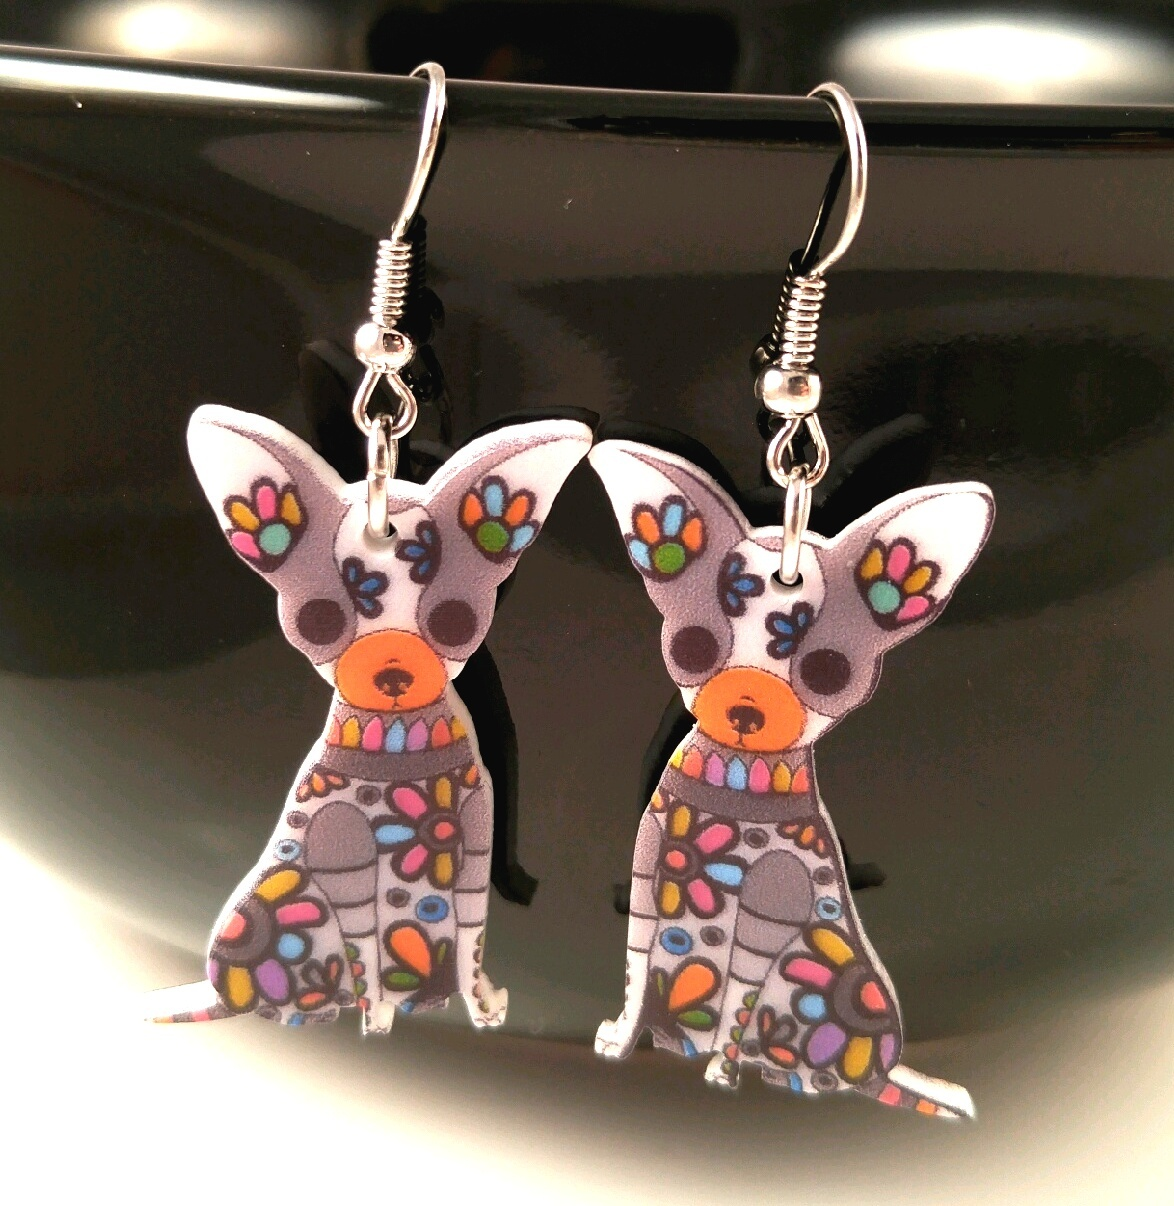 e16cd1661 Chihuahua Multi Color Earrings 2 CHOICES and 30 similar items. Three chi  ear cid 20161213 195113